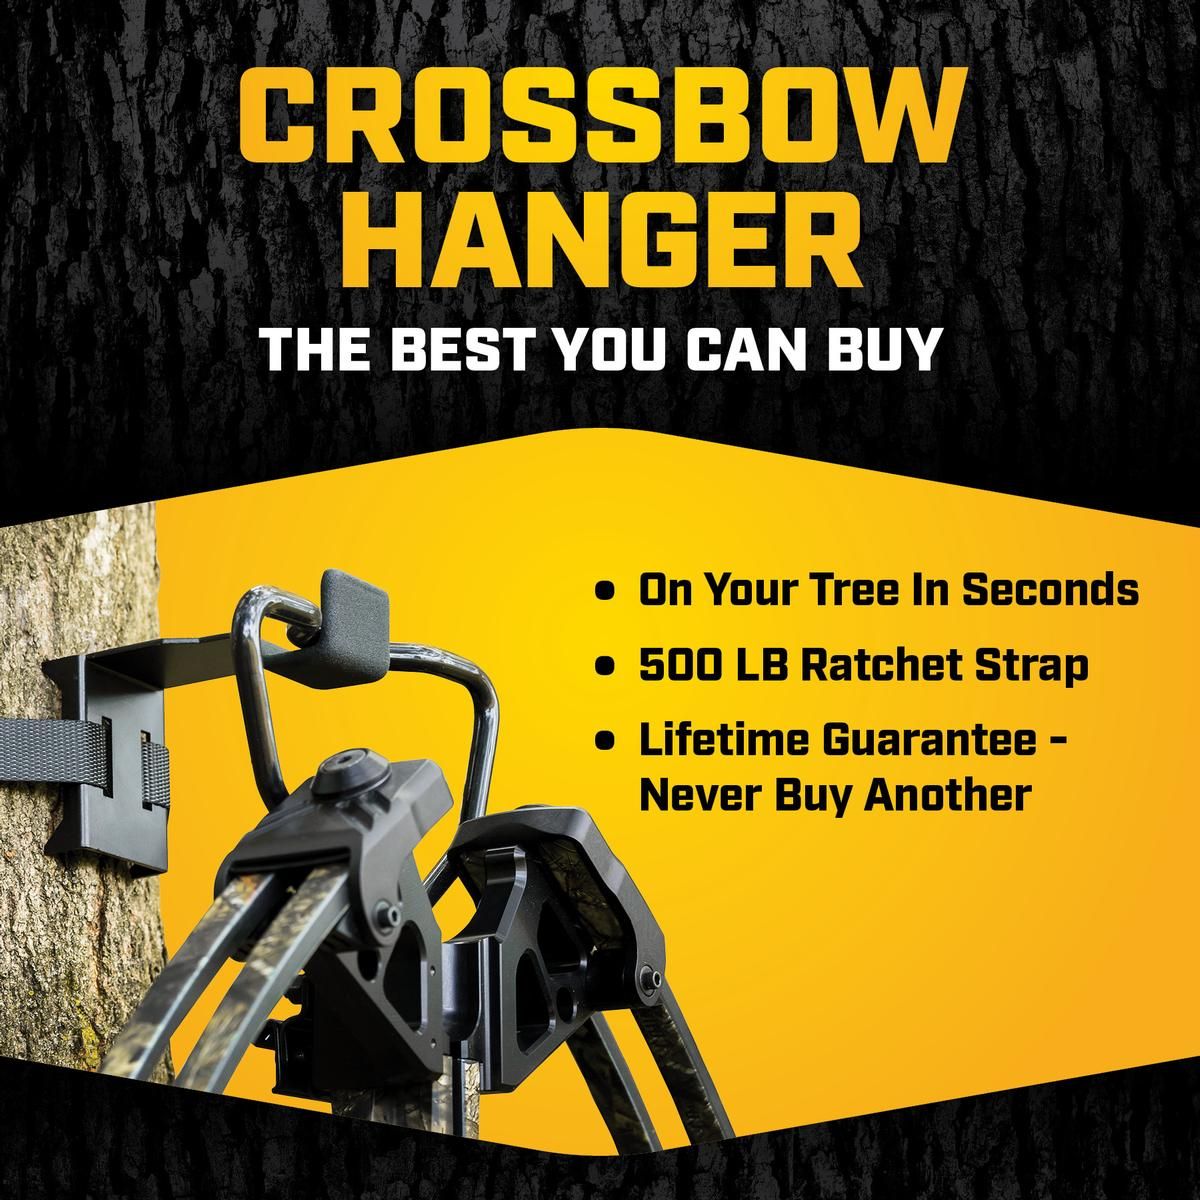 CROSSBOW HANGER - On Your Tree In Seconds